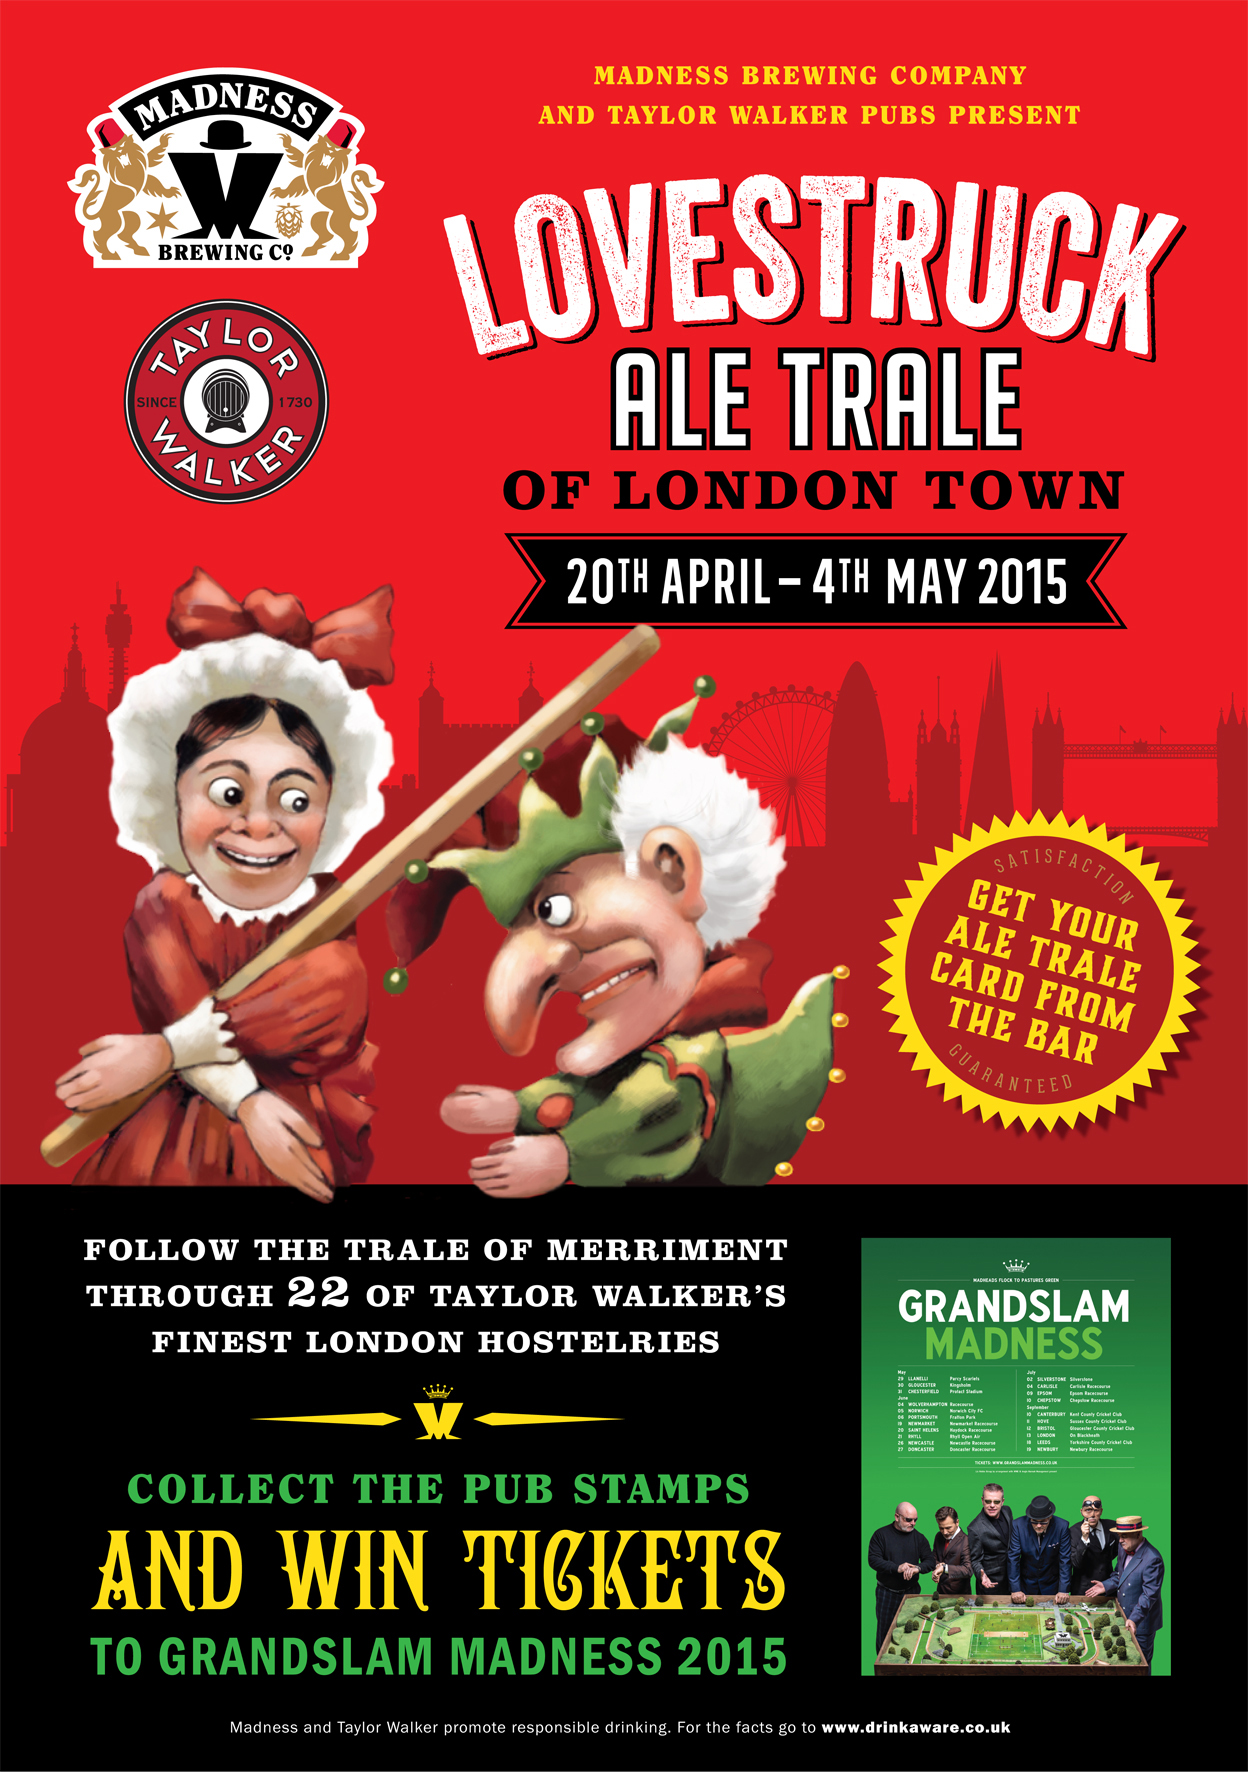 Lovestruck London Ale Trale 20th April 4th May Madness